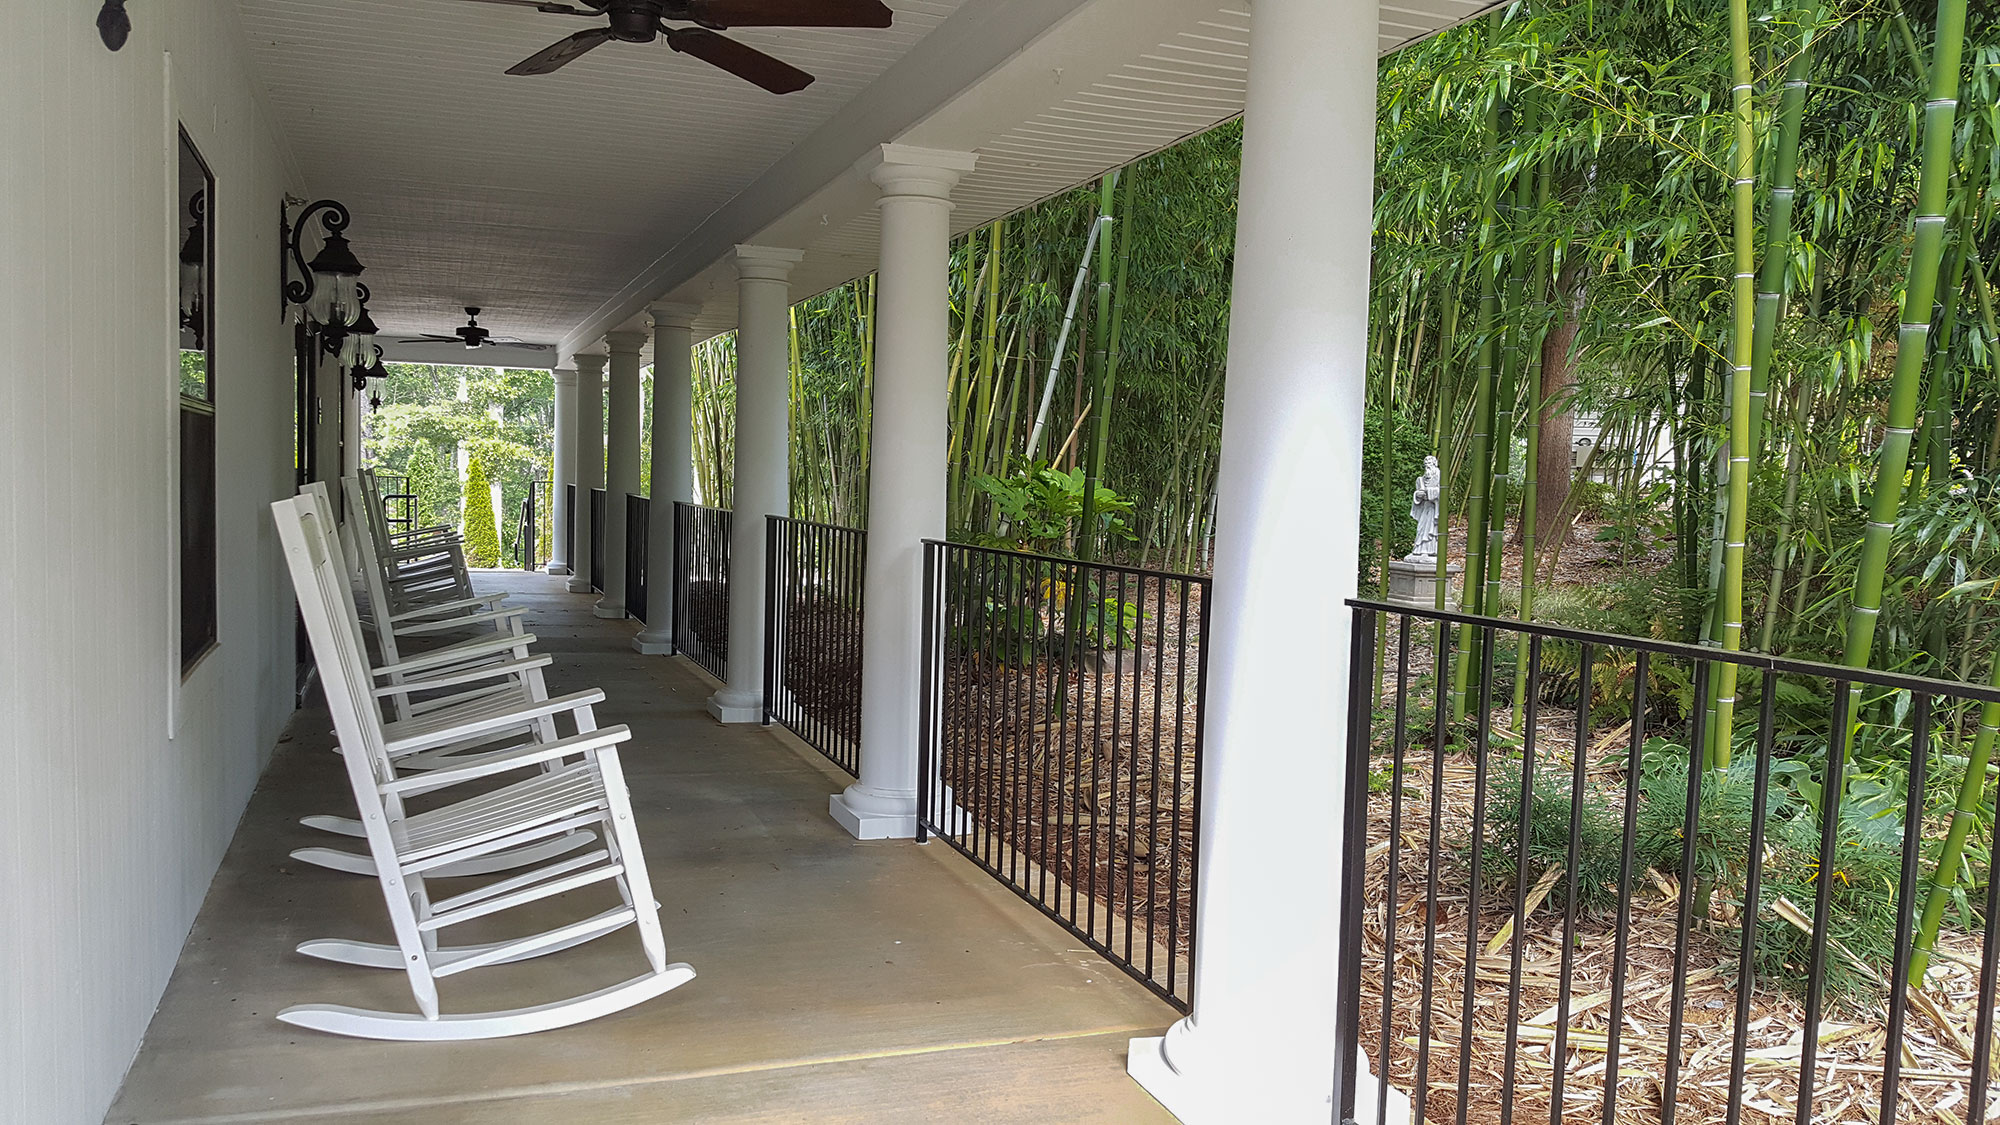 Photo of the porch of our classroom building.